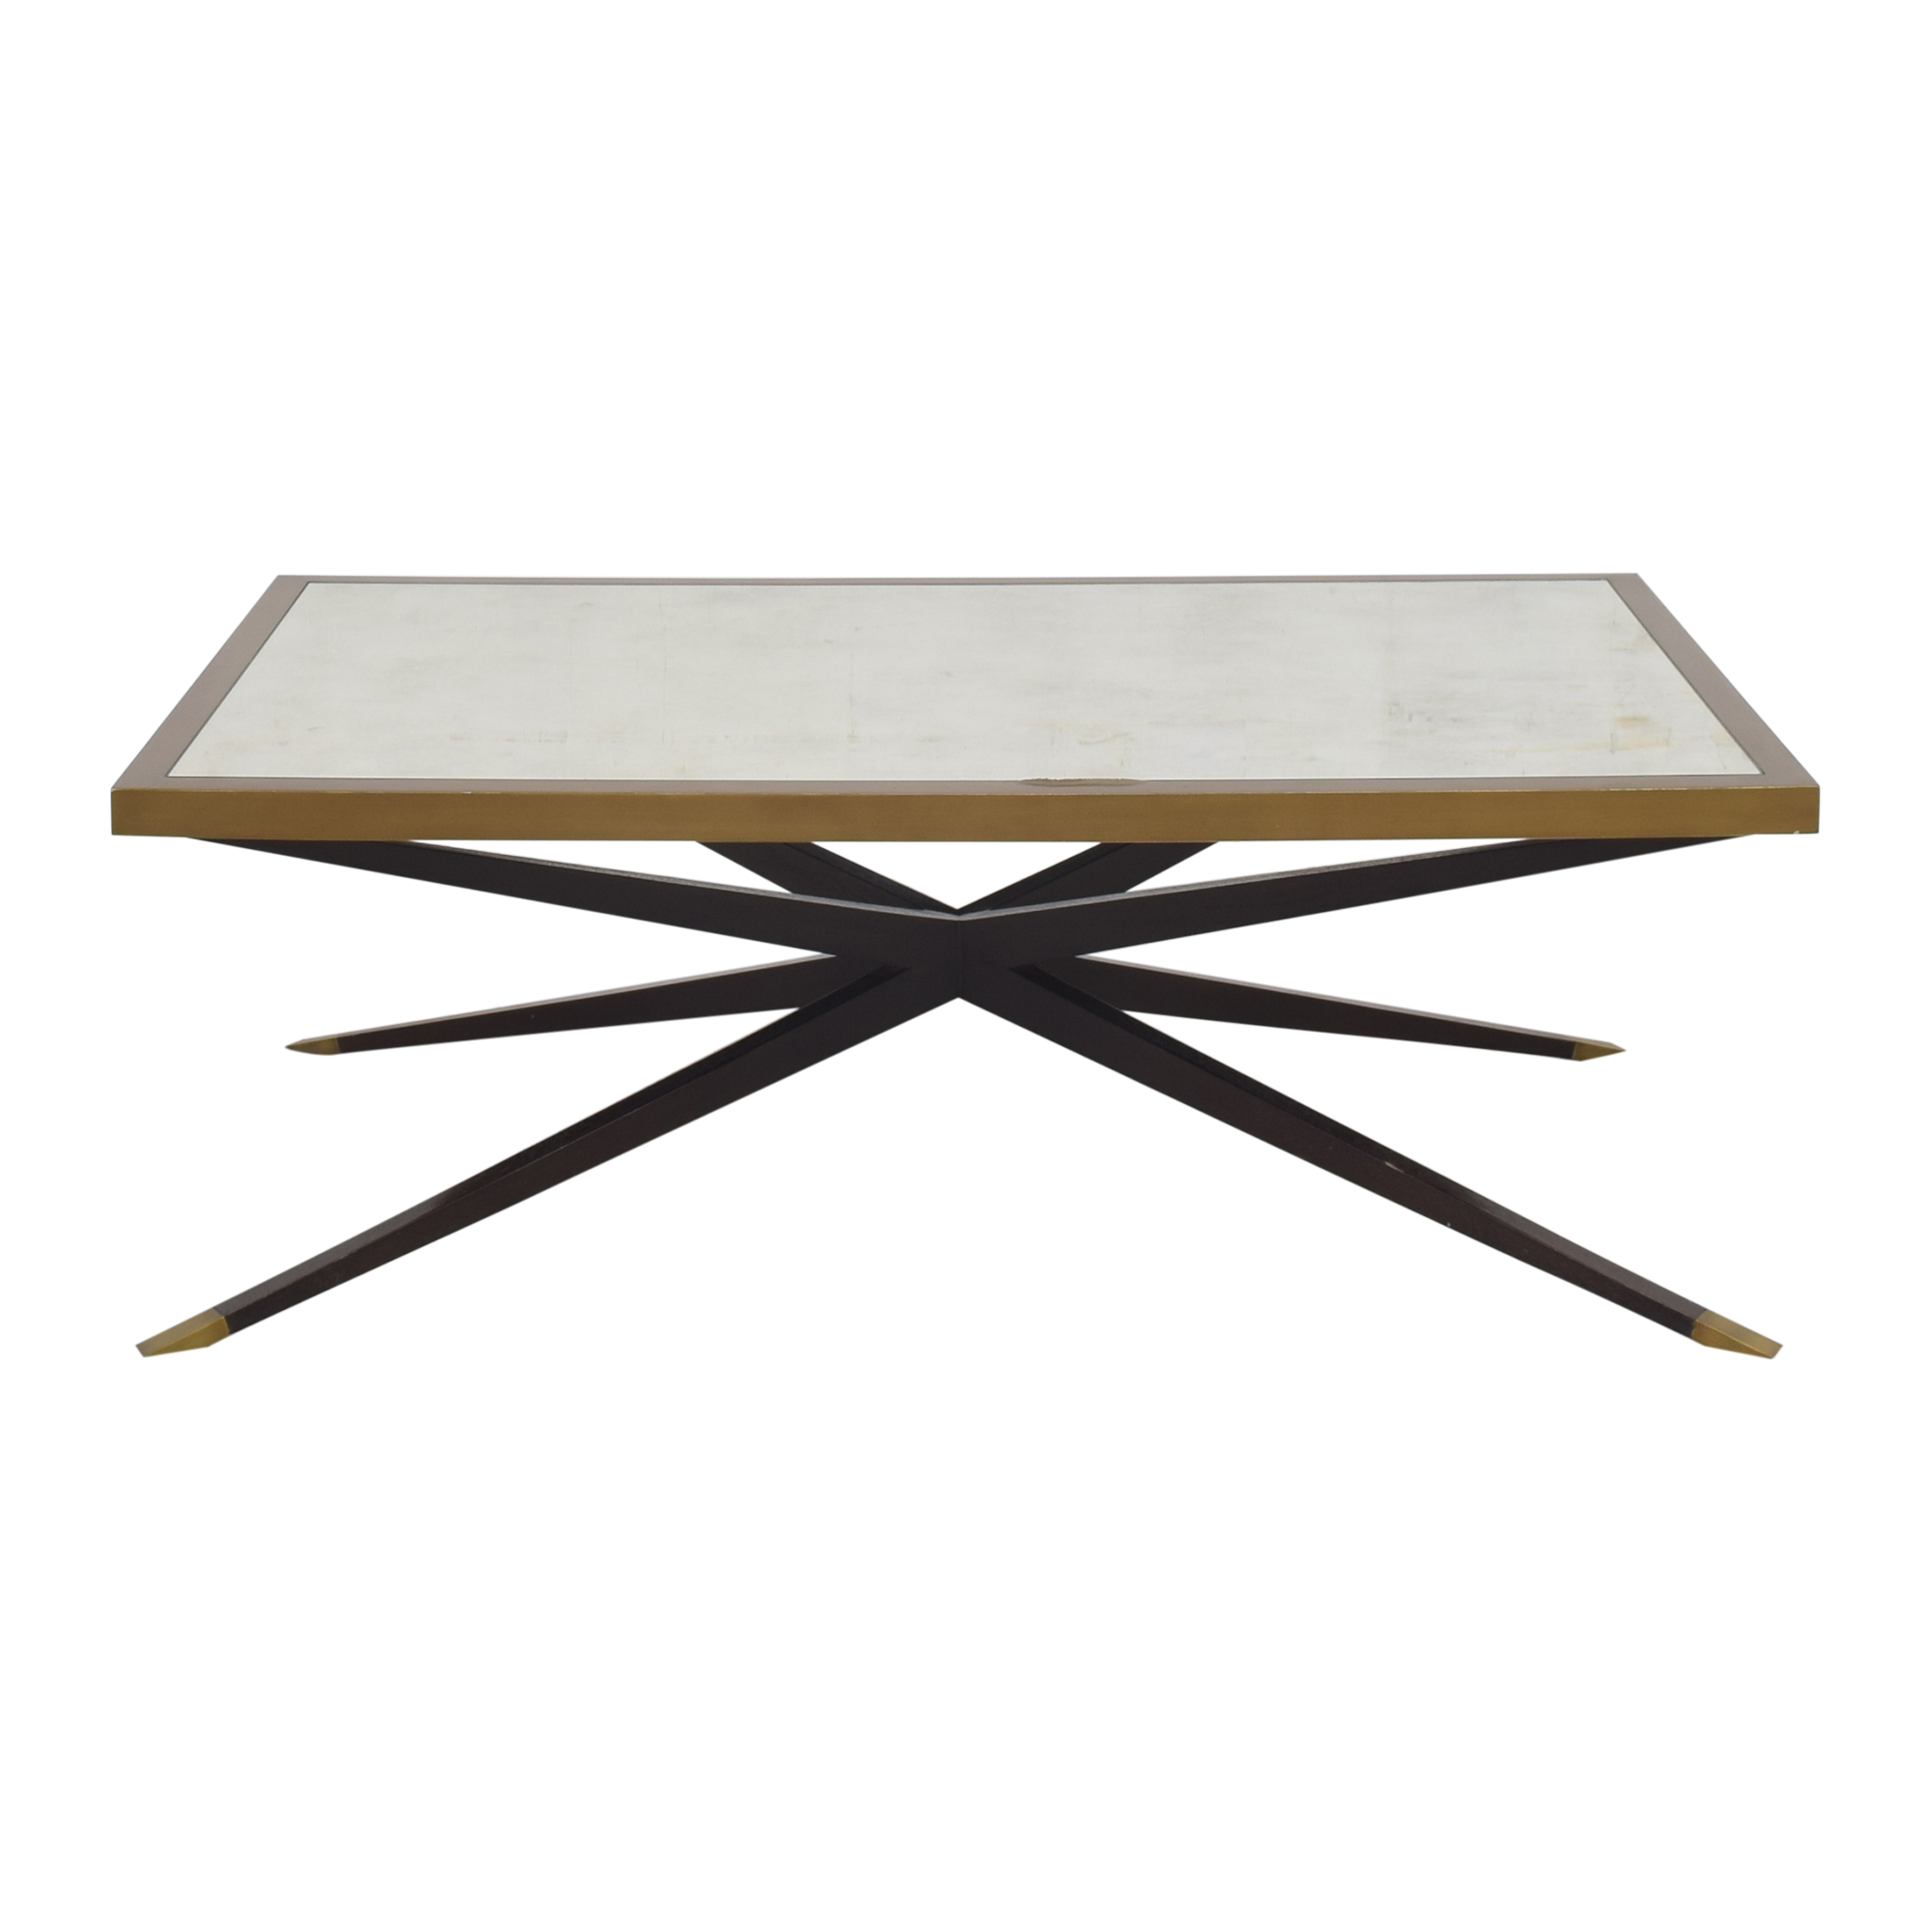 Mr. Brown London Mr. Brown London Atlantis Coffee Table discount